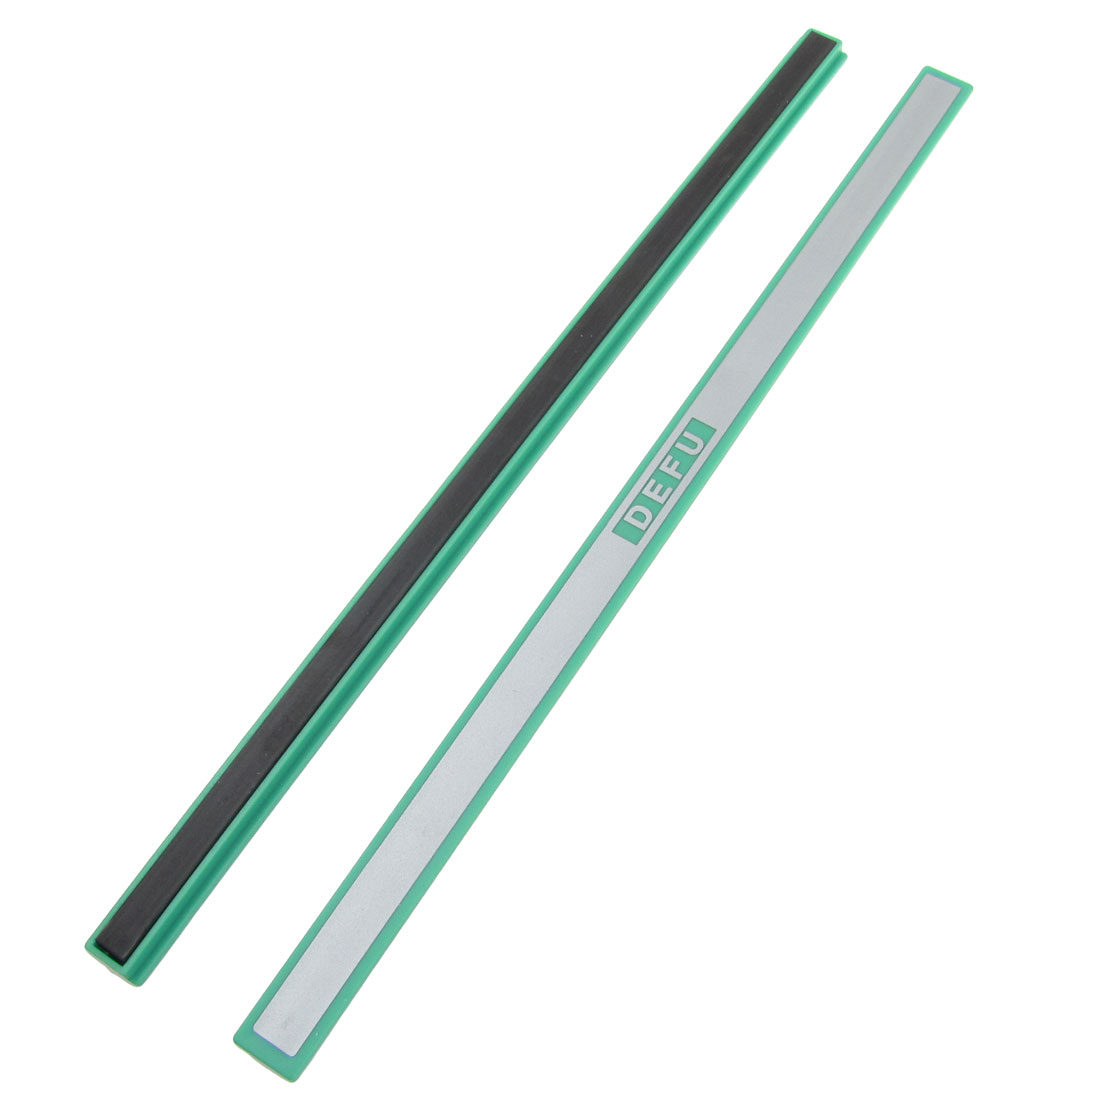 "2 Pcs 7.8"" Long Green Plastic Whiteboard Magnetic Bars for School Office"